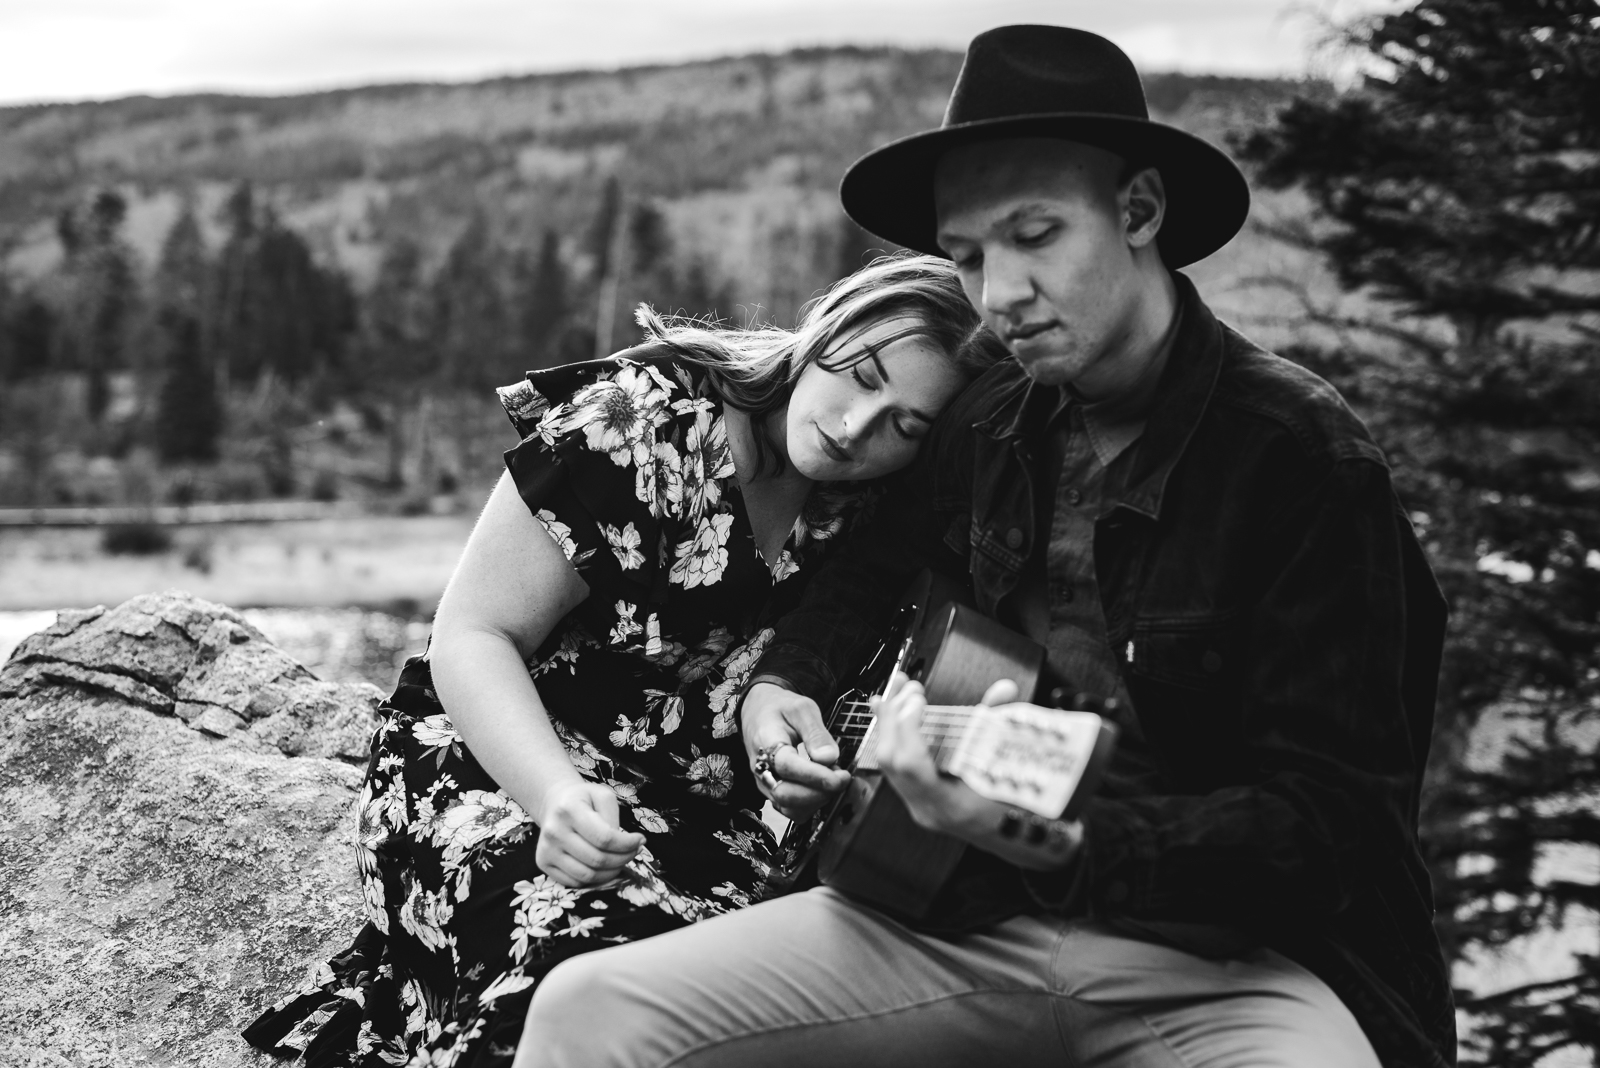 Corianne & Kristopher | Engagement Photo | Rocky Mountain National Park | From the Hip Photo